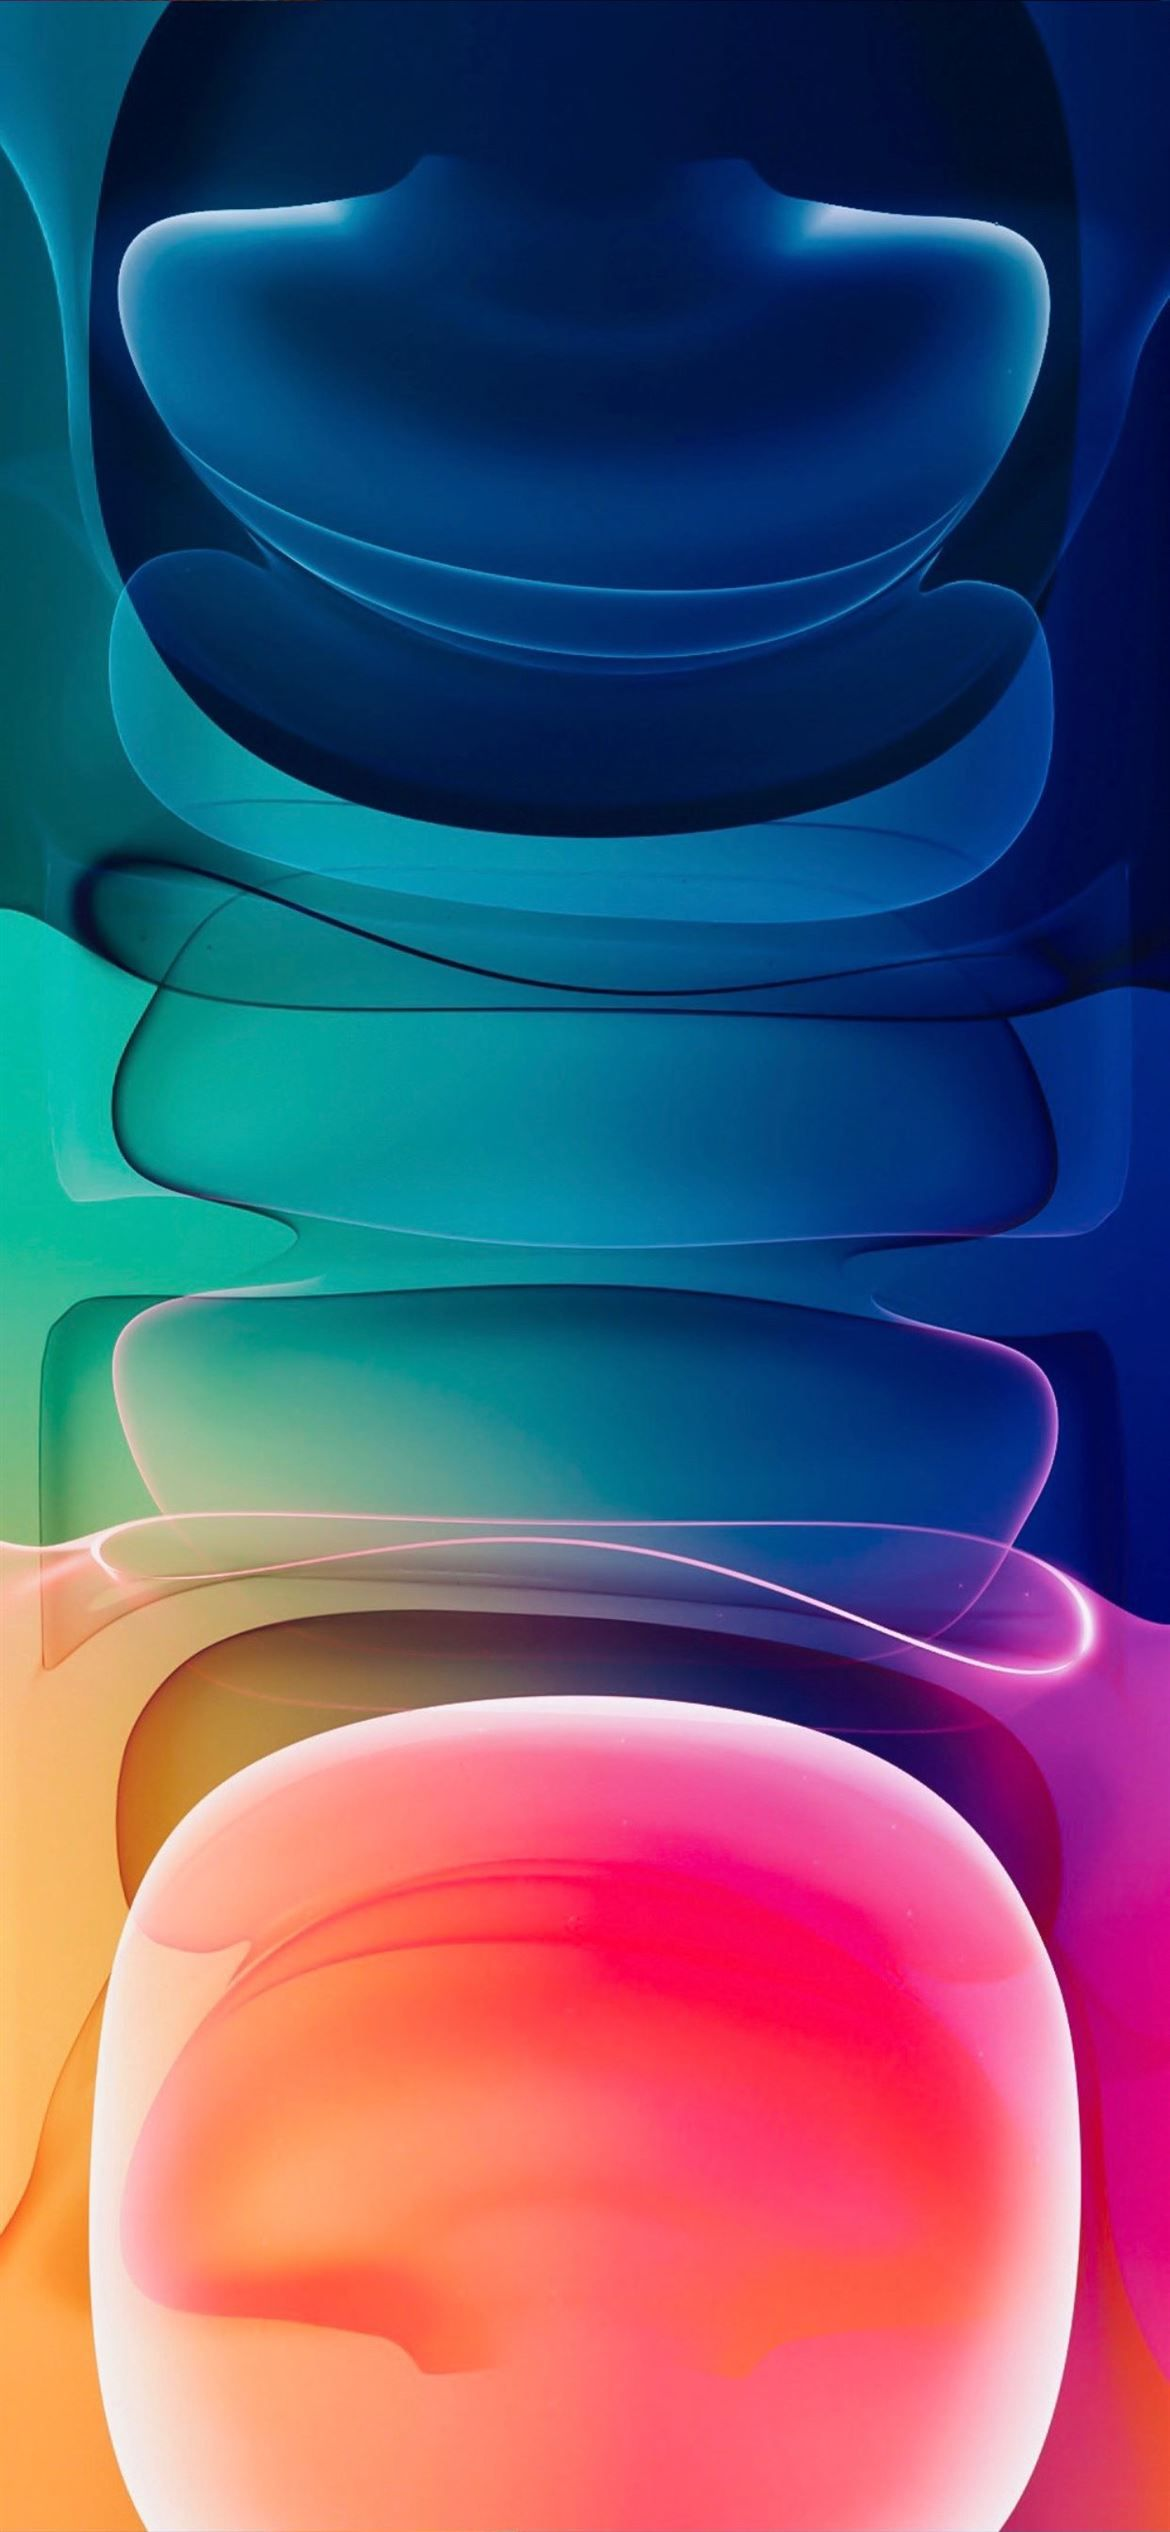 Iphone 21 Pro Max Wallpapers posted by Sarah Cunningham